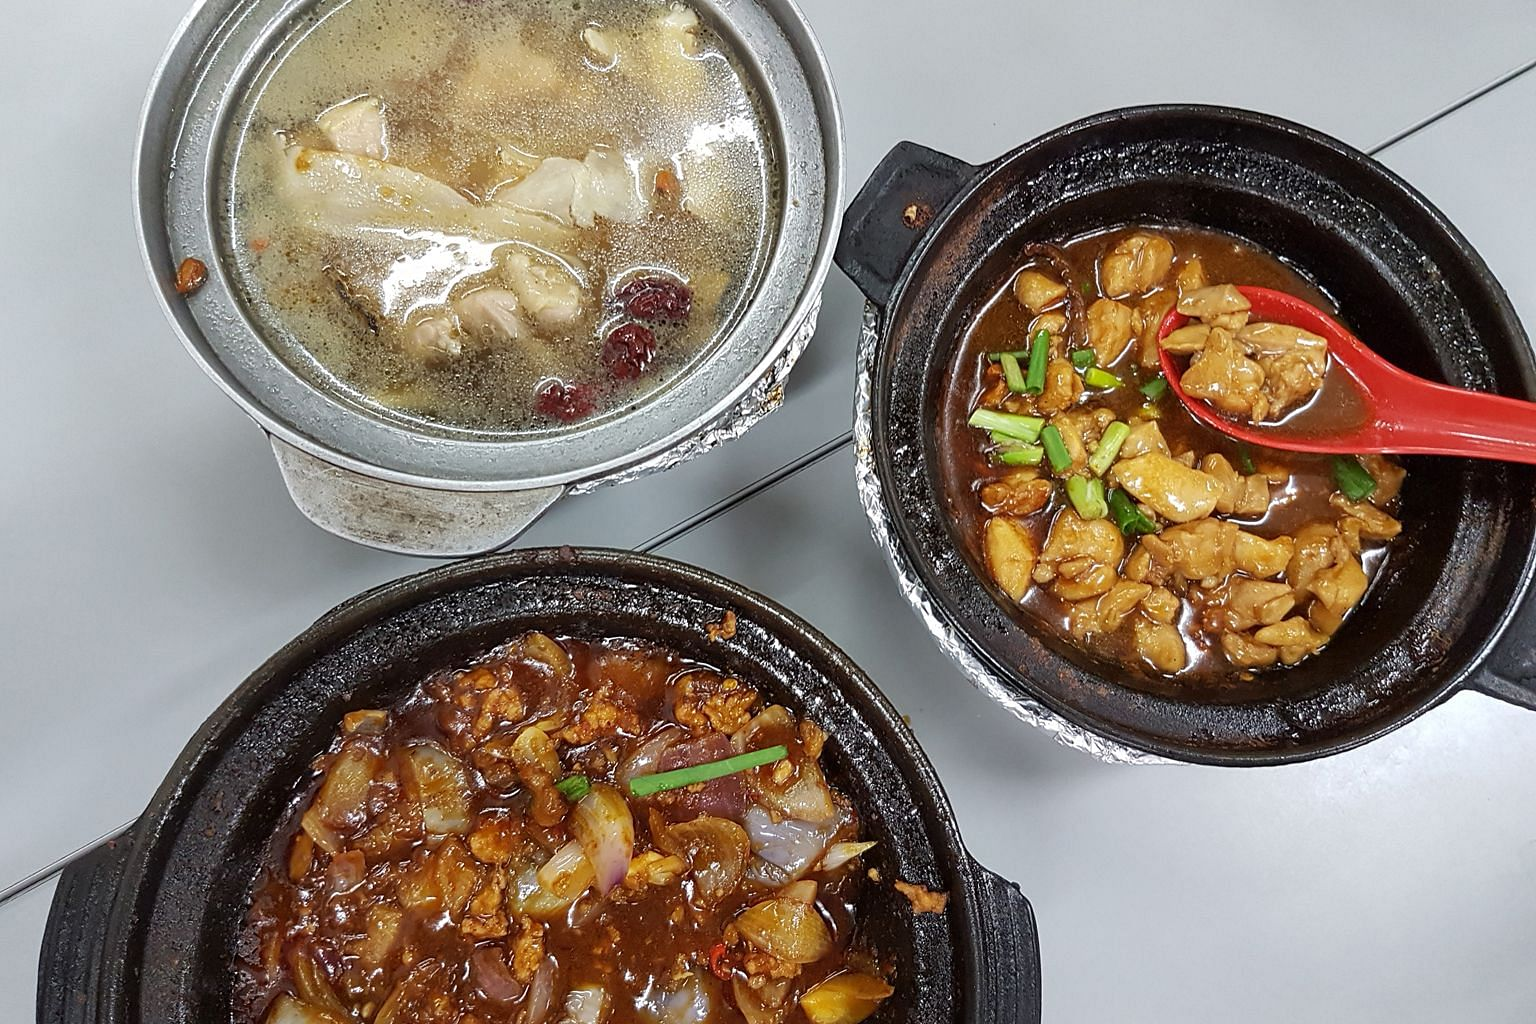 Clockwise from top left: herbal chicken soup; sesame oil chicken; and eggplant and minced meat.